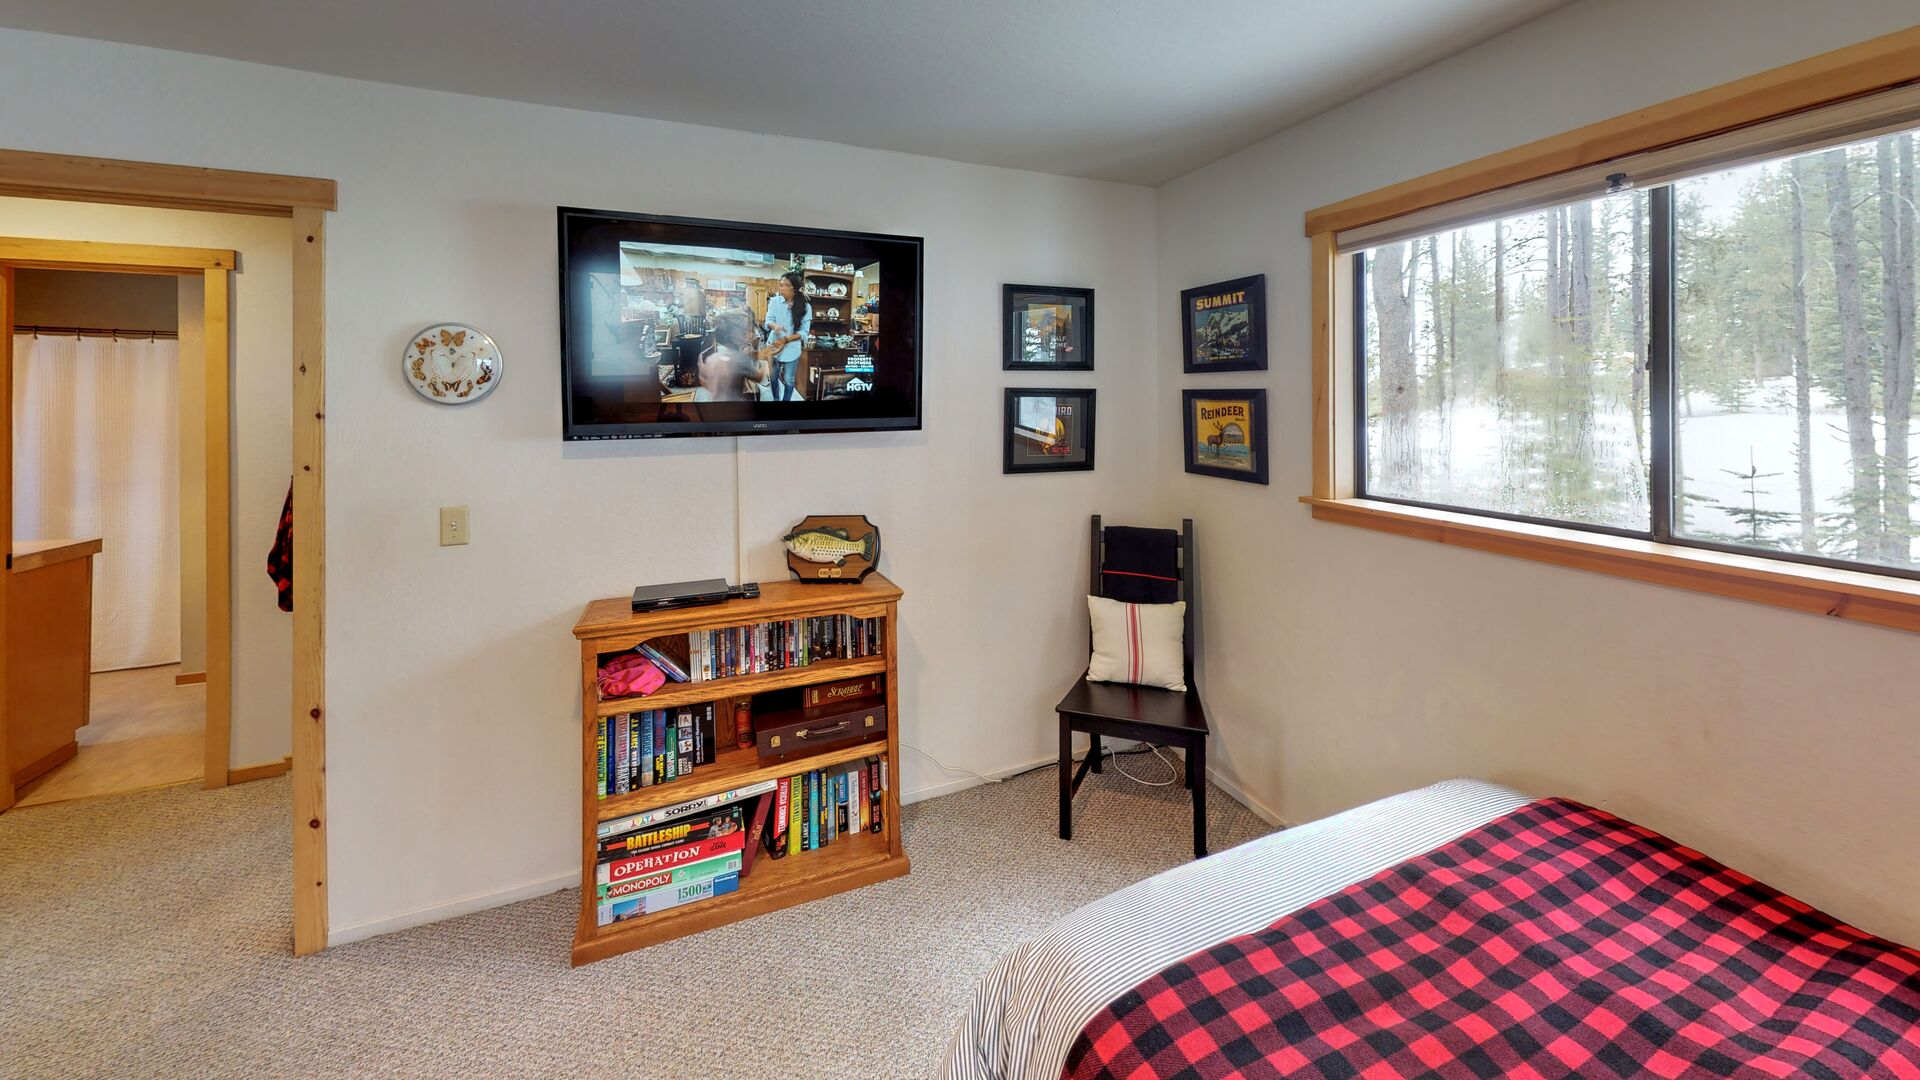 Mounted TV Above a Bookshelf in the Second Bedroom